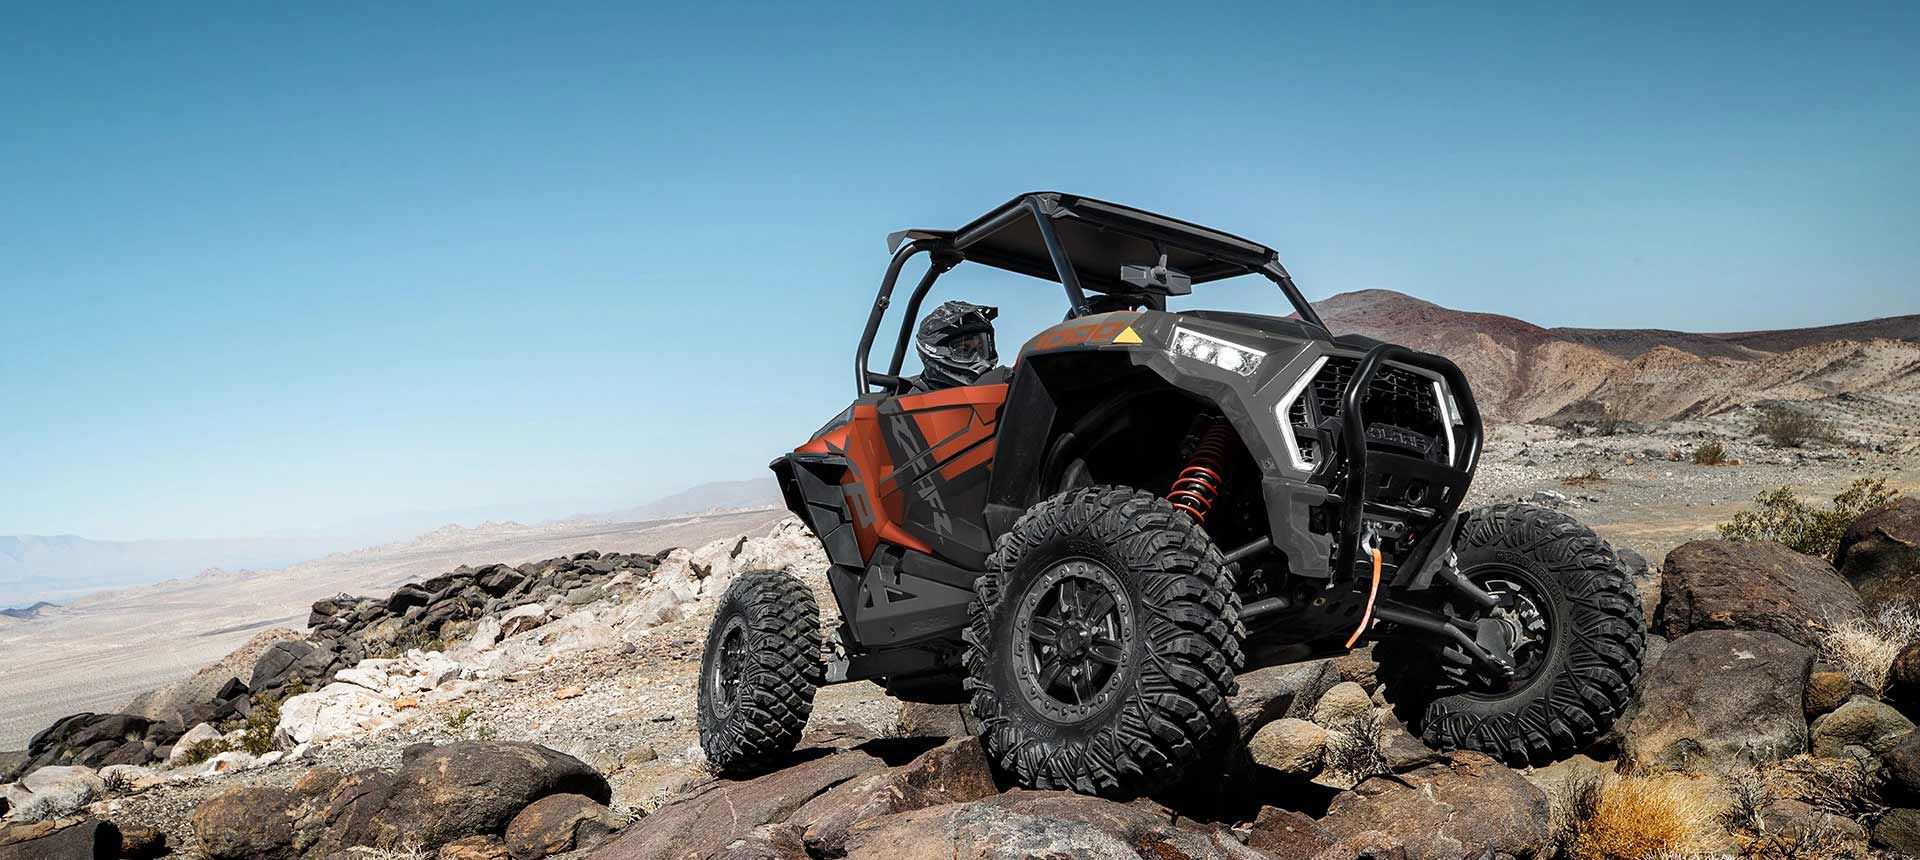 If you like your fun on the rocks, you'll dig the RZR XP 1000 Trails & Rocks Edition.